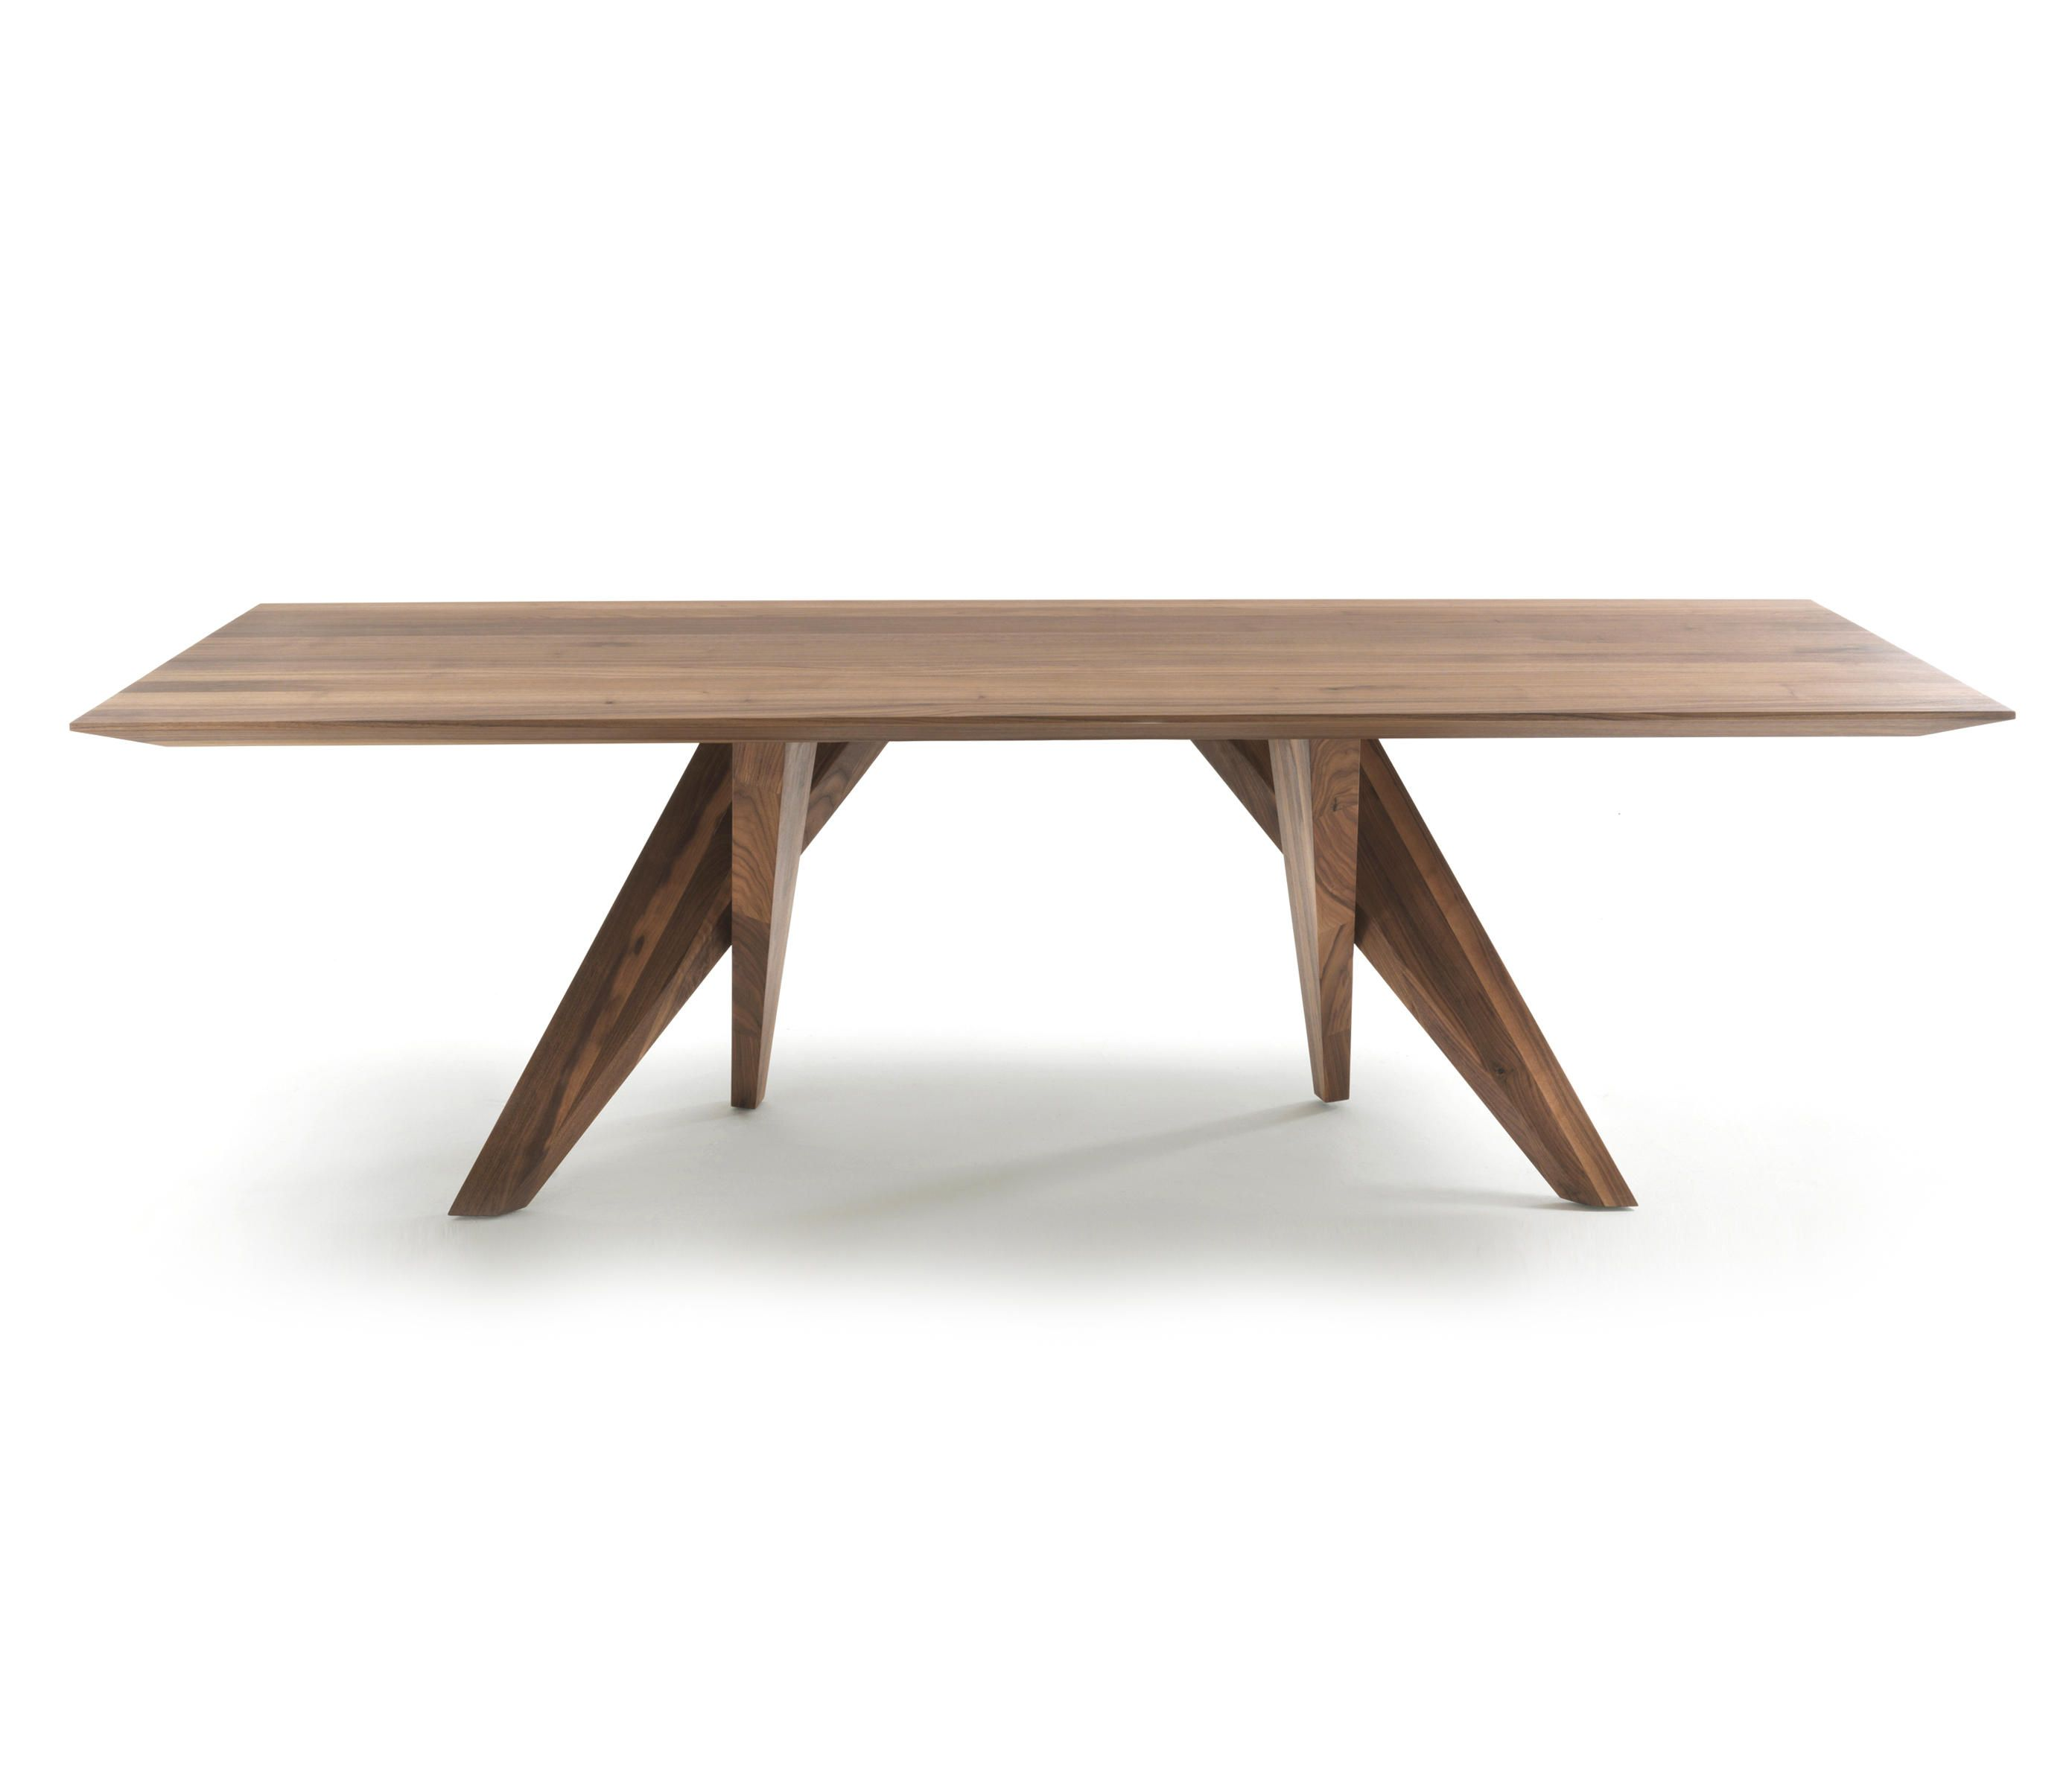 Sw Table By Riva 1920 Dining Tables Legs Pinterest # Meuble Tv Riva